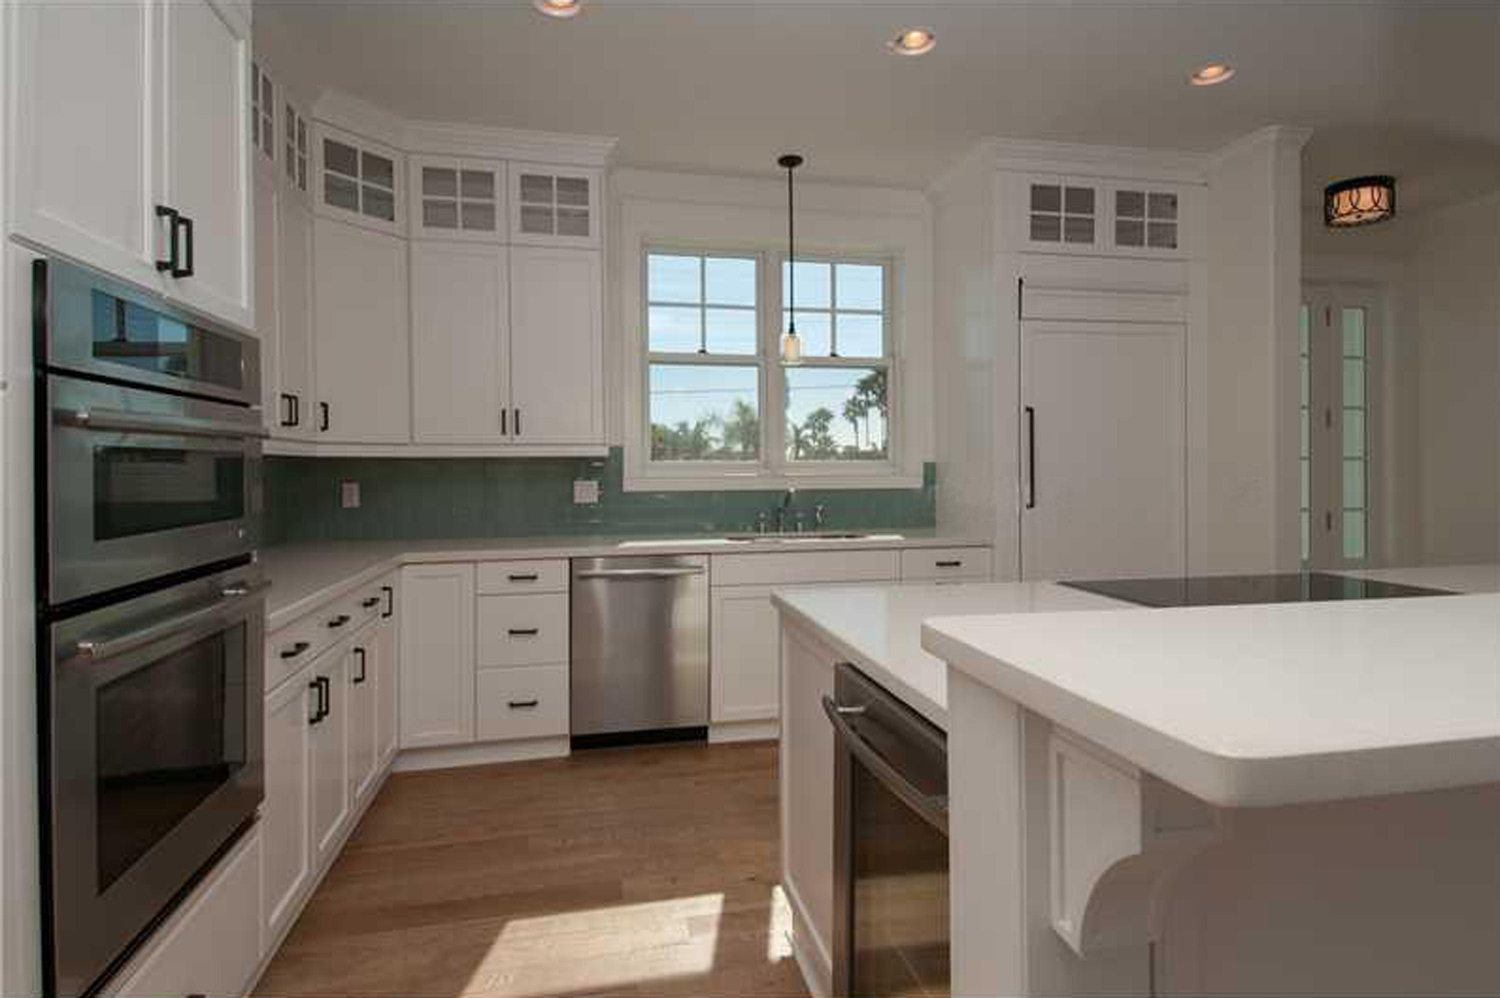 Kitchen at the St. Petes Beach residence by OCV Architects.